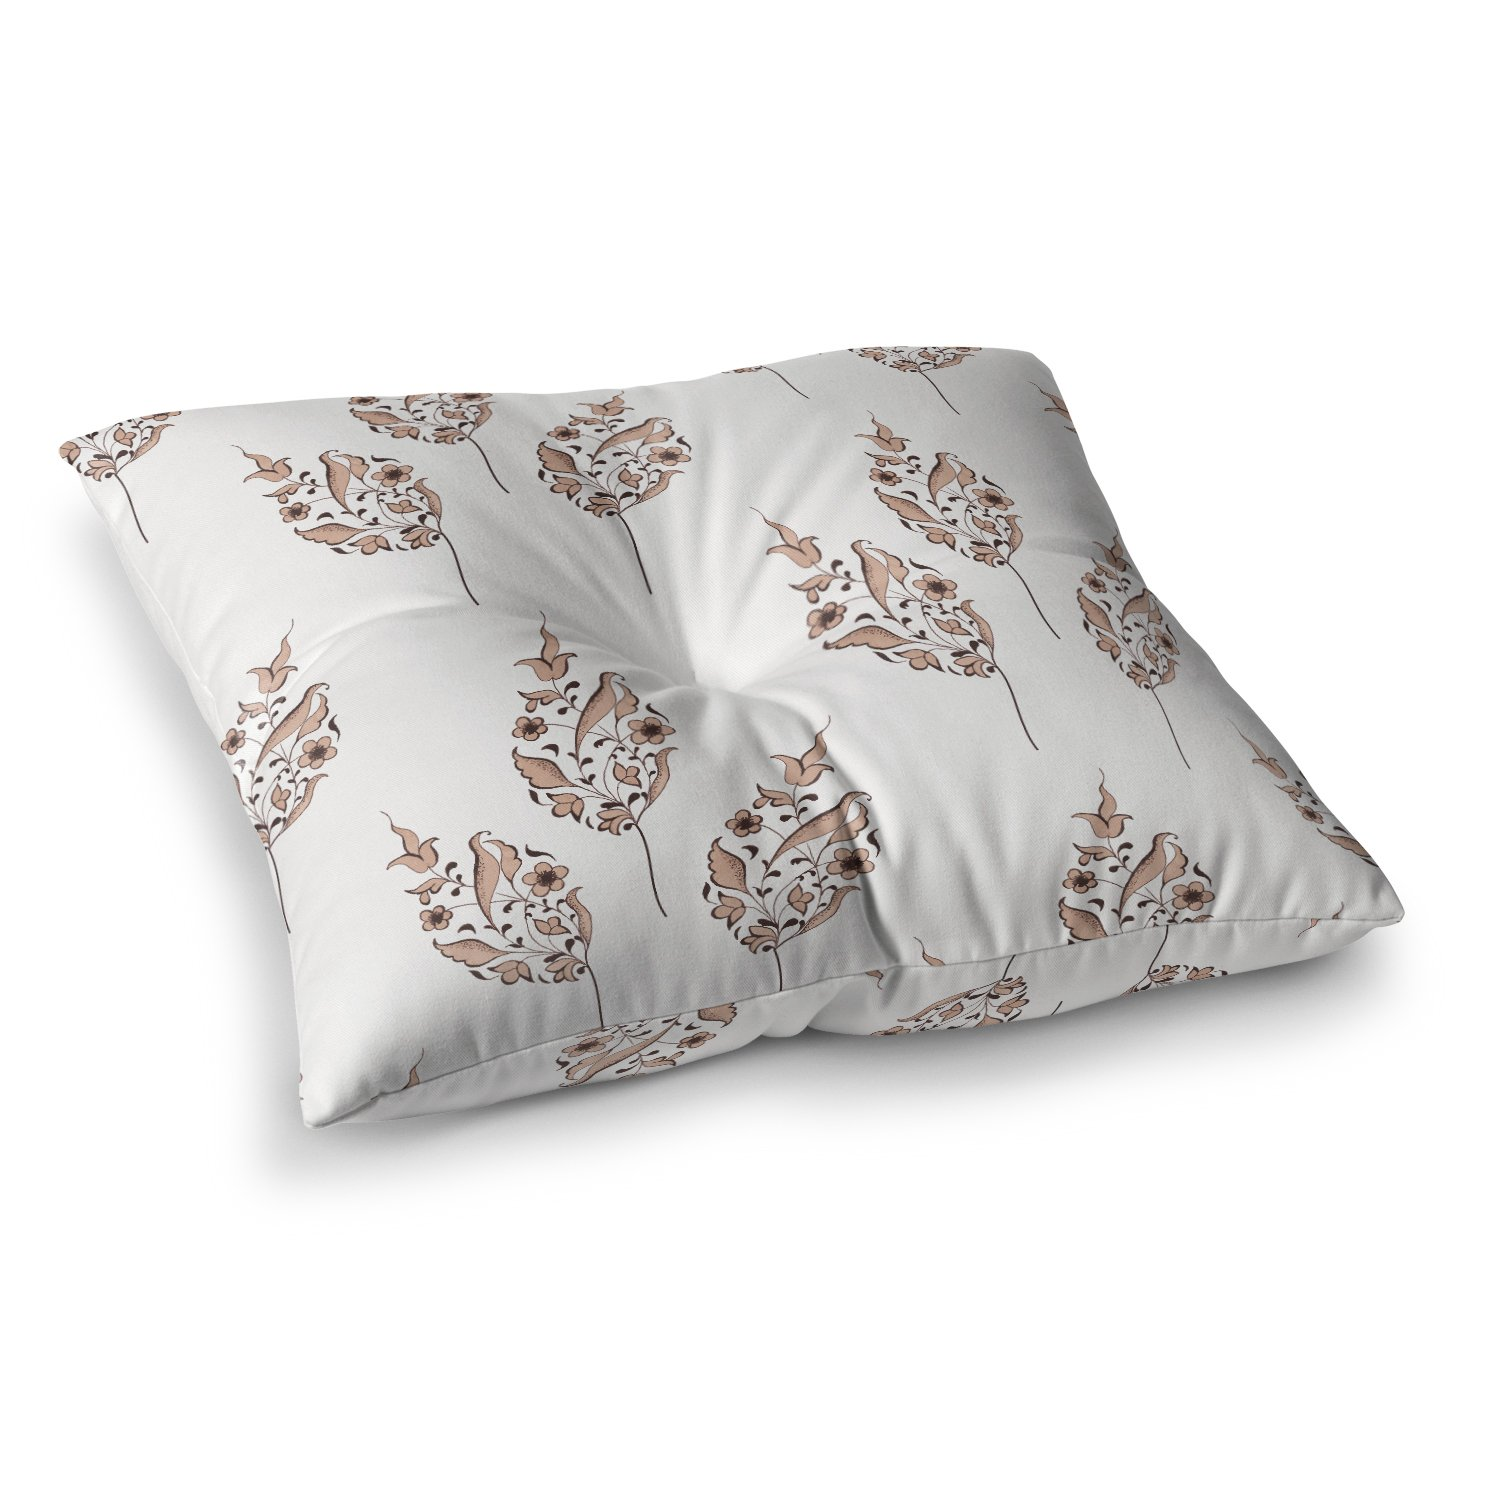 26 x 26 Square Floor Pillow Kess InHouse Louise Pattern Brown Flower